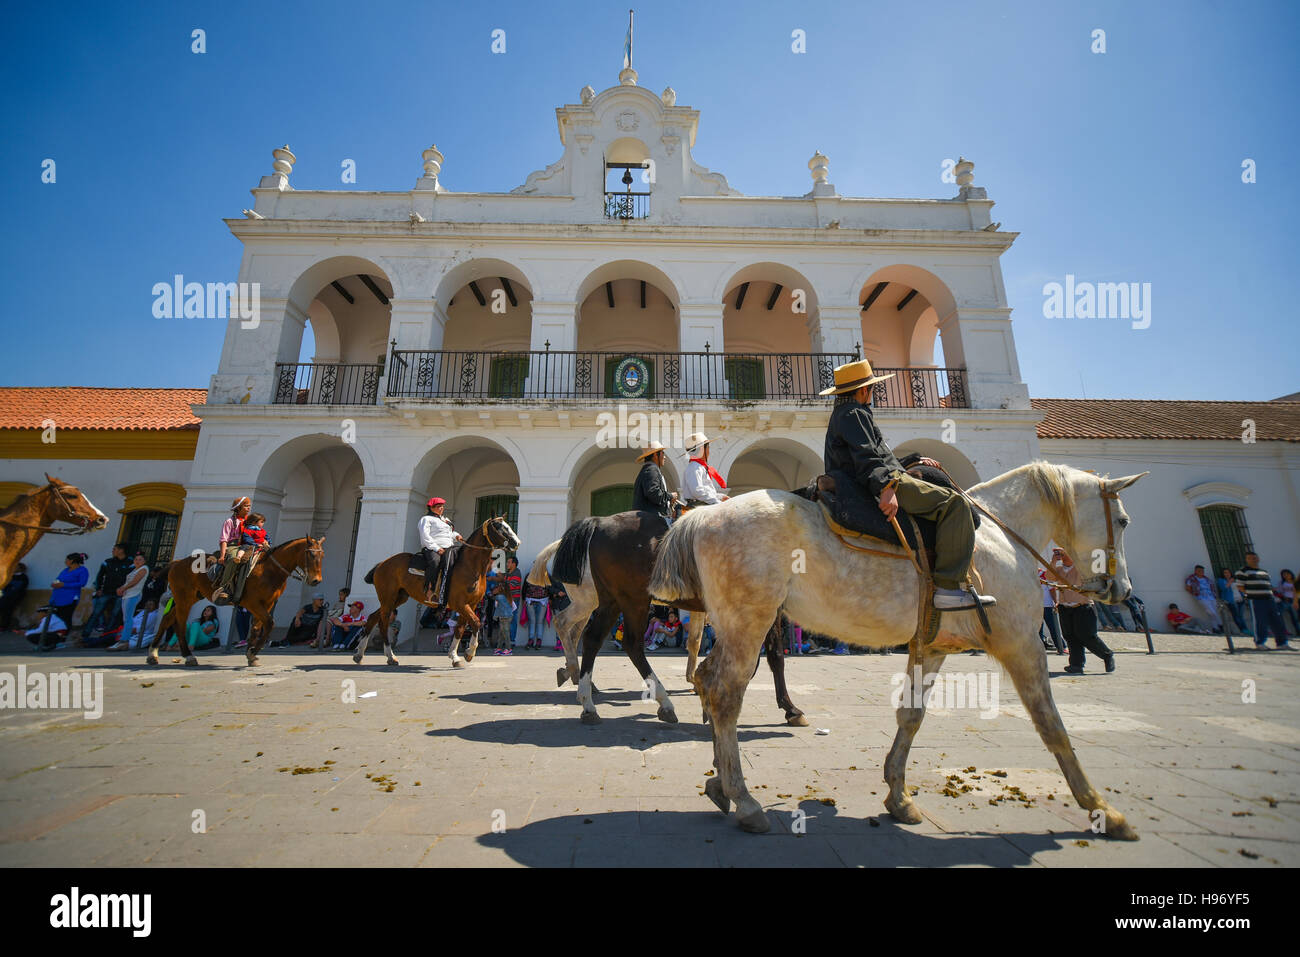 Lujan, Argentina. 25 Sep, 2016. A group of gauchos during the pilgrimage to the Basilica of Our Lady of Lujan. - Stock Image